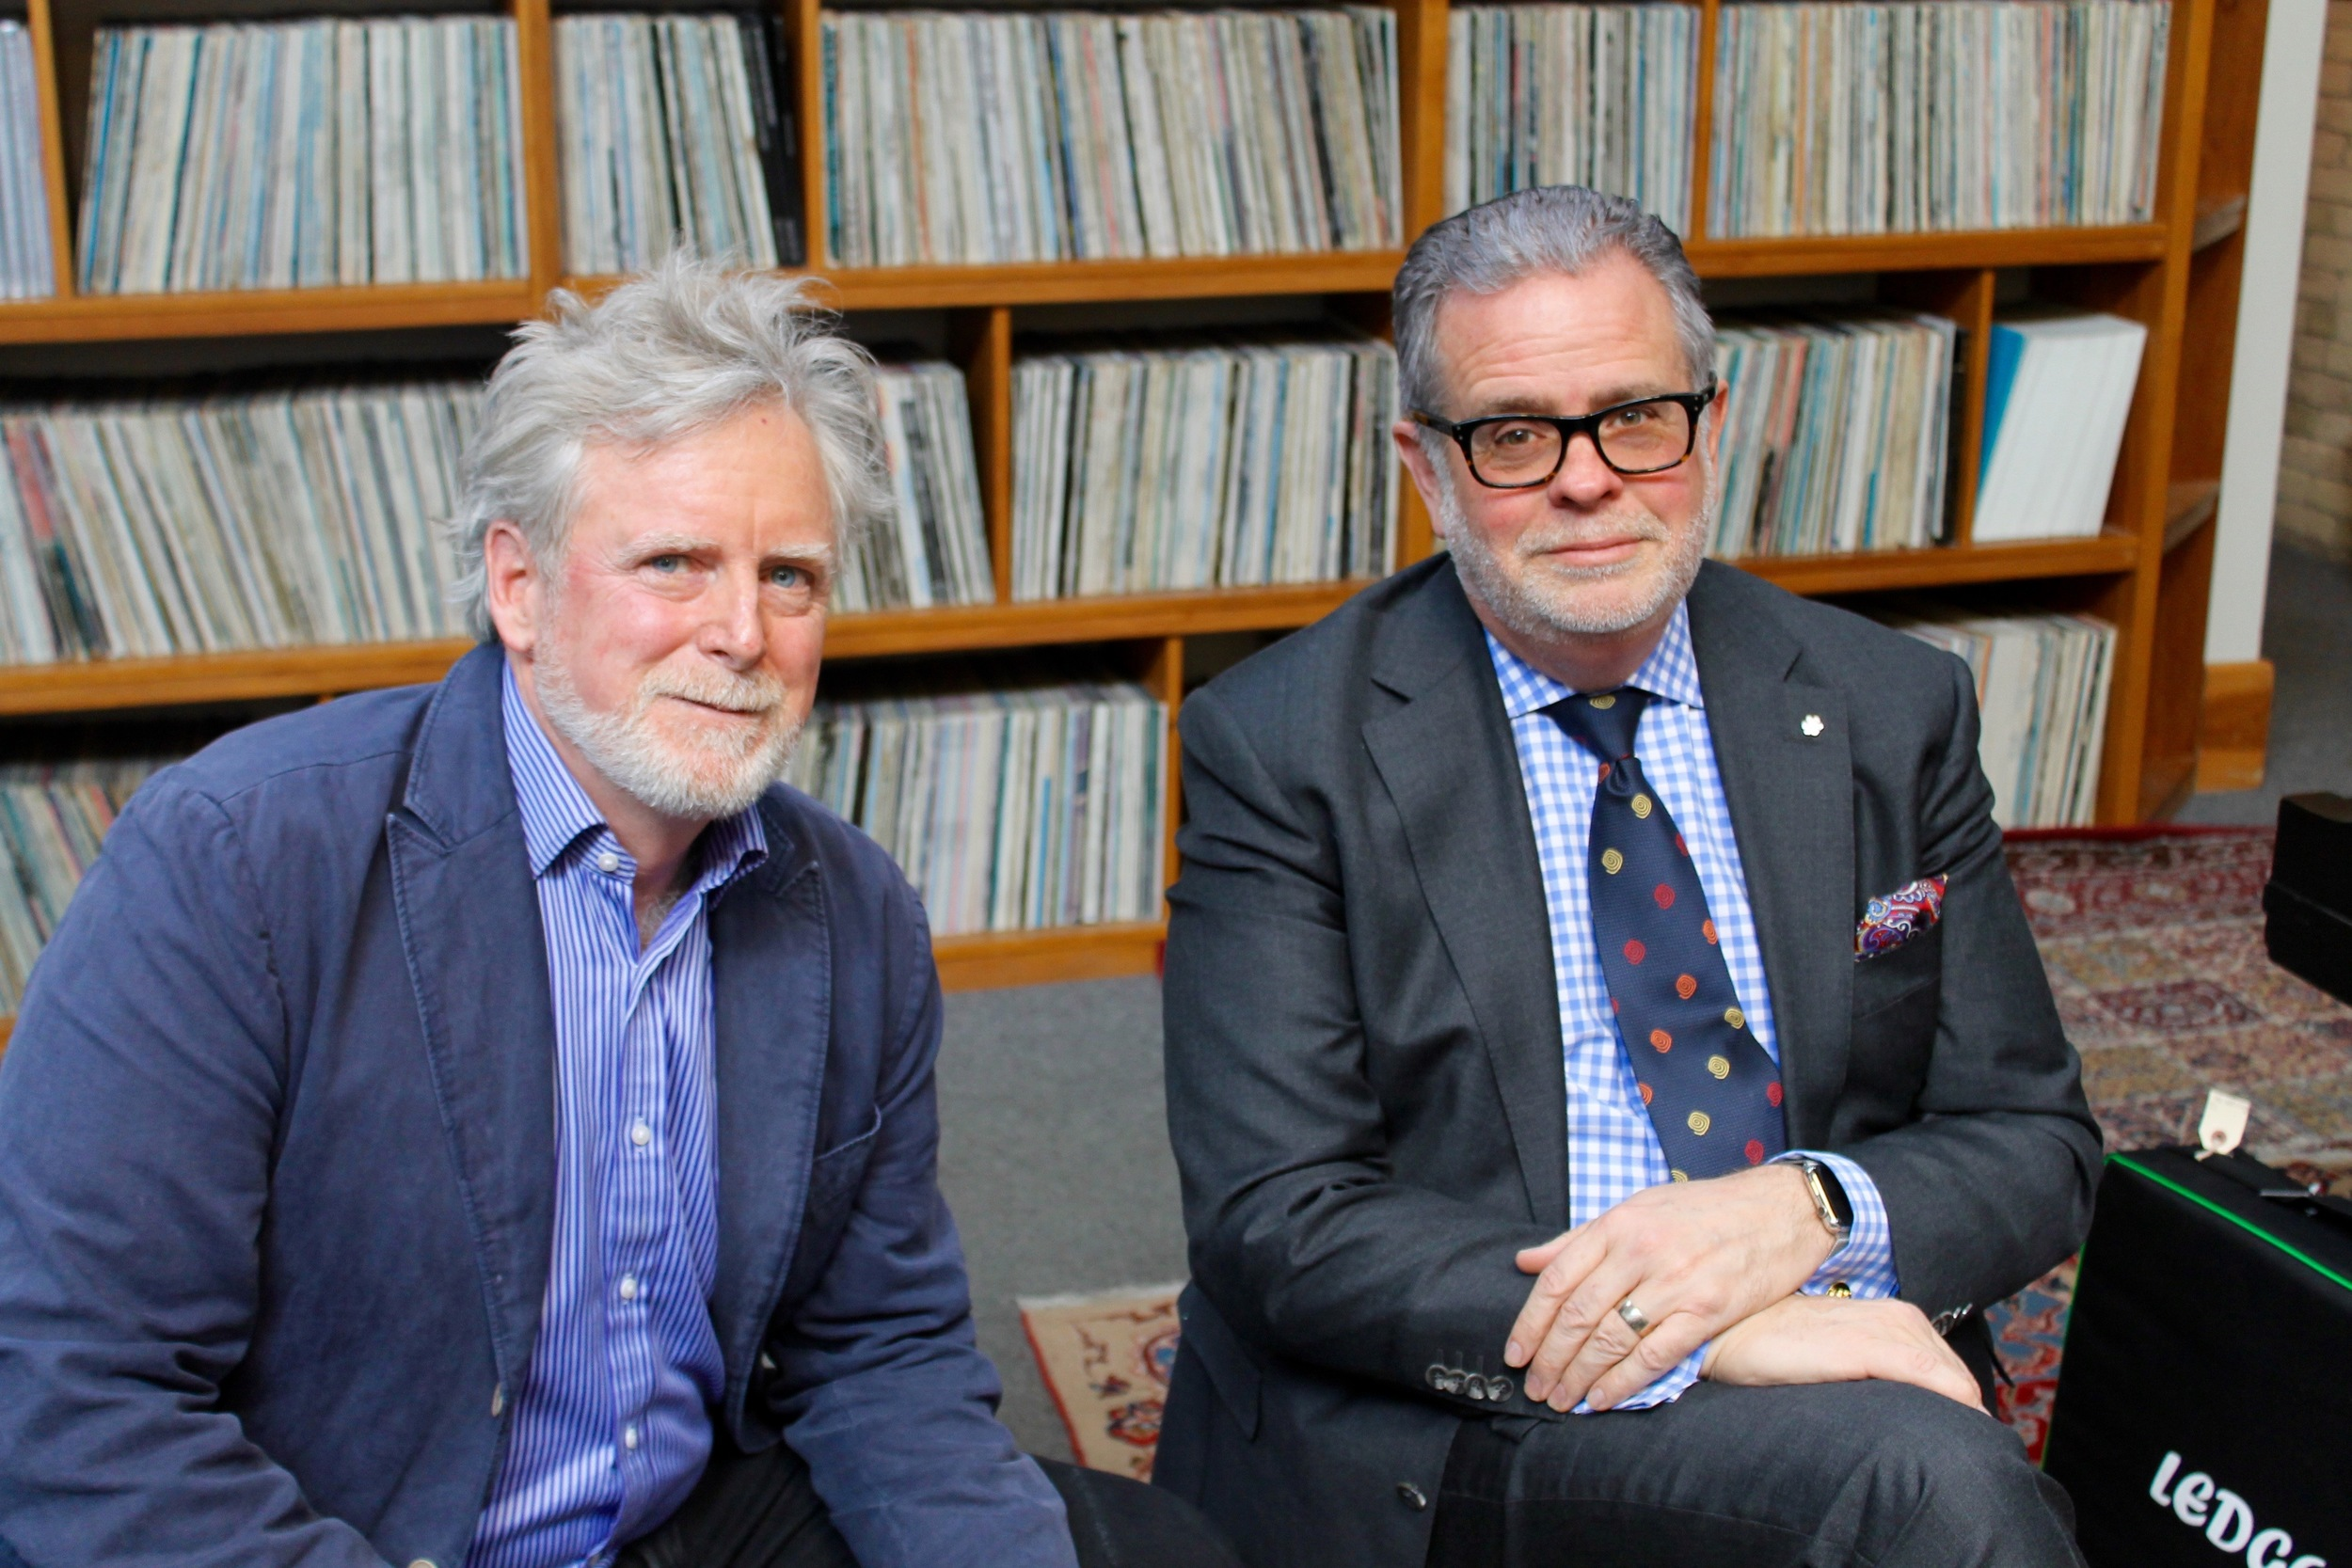 Galloway film Producer/Director James Cullingham (left) with JazzFM CEO, Ross Porter (right) - Mar. 2016